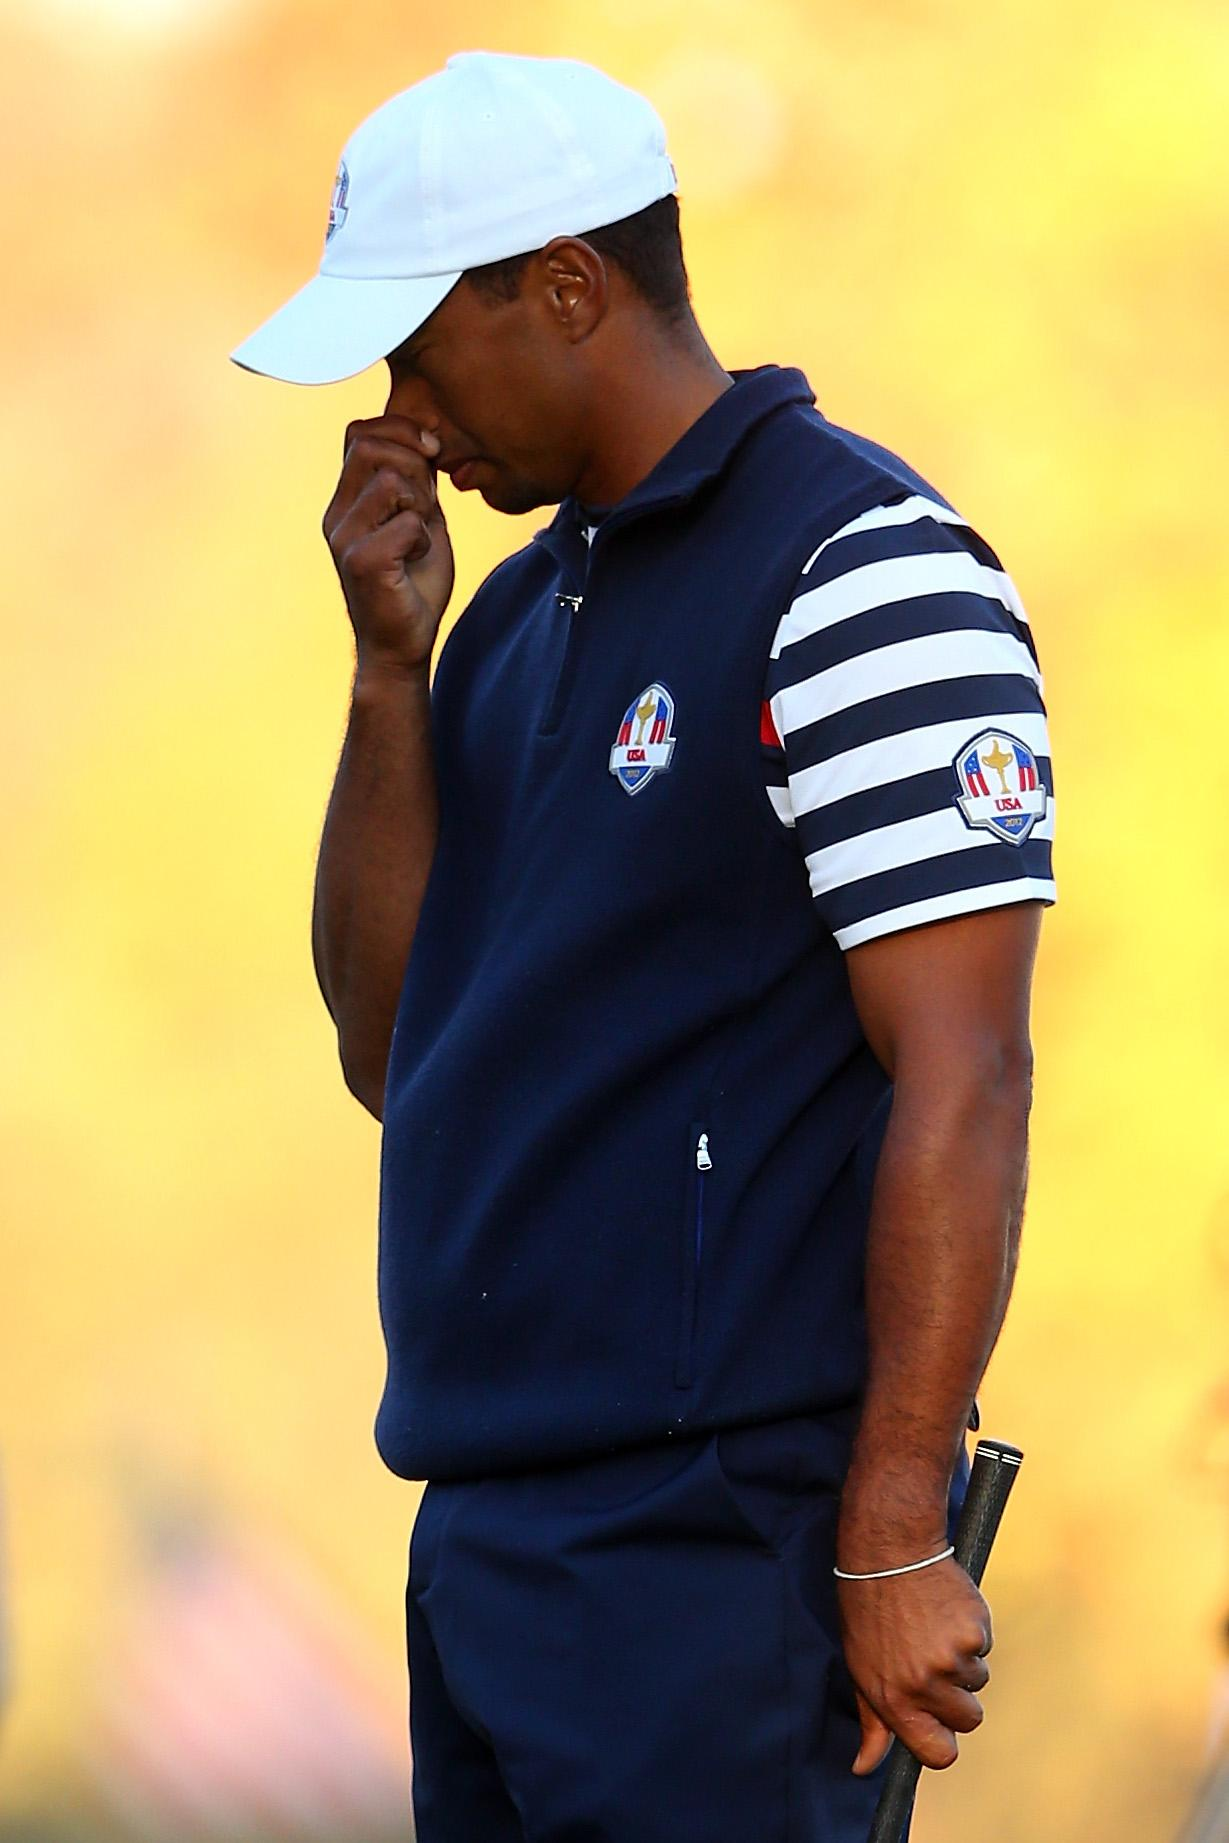 Tiger Woods suffered his first bout of back pain at the 2012 Ryder Cup